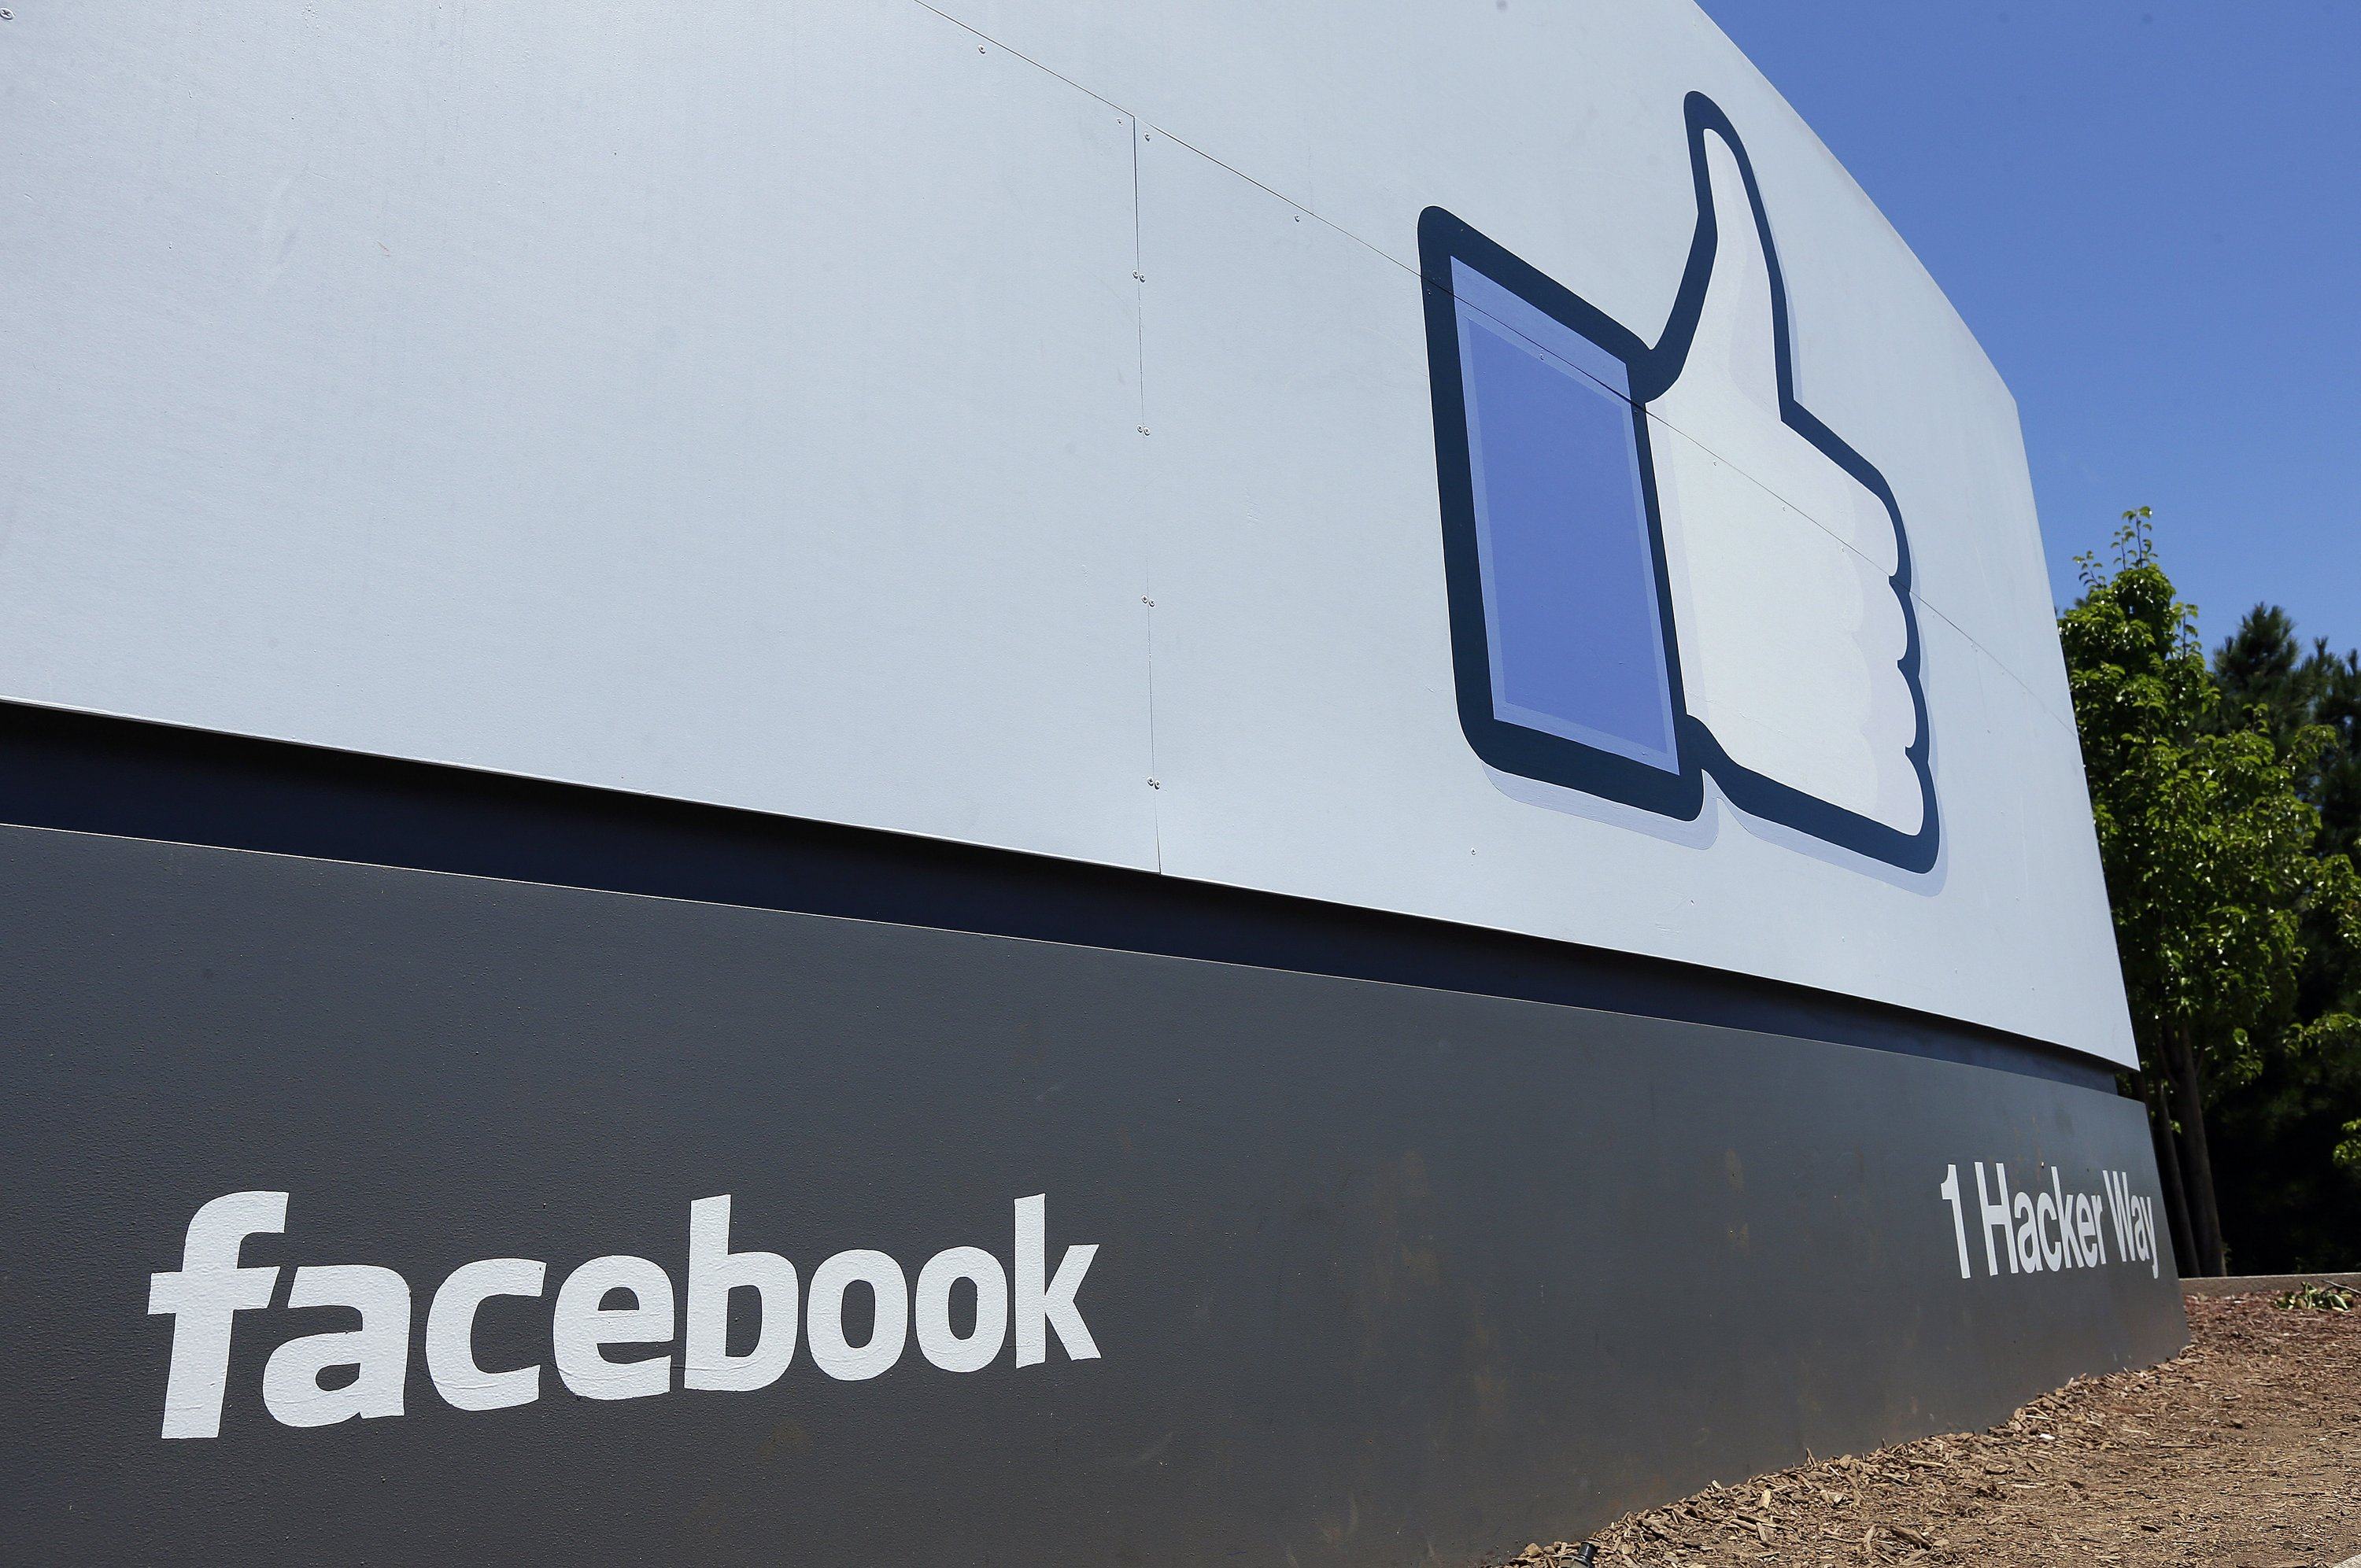 Facebook: Hackers accessed personal data from 29M accounts